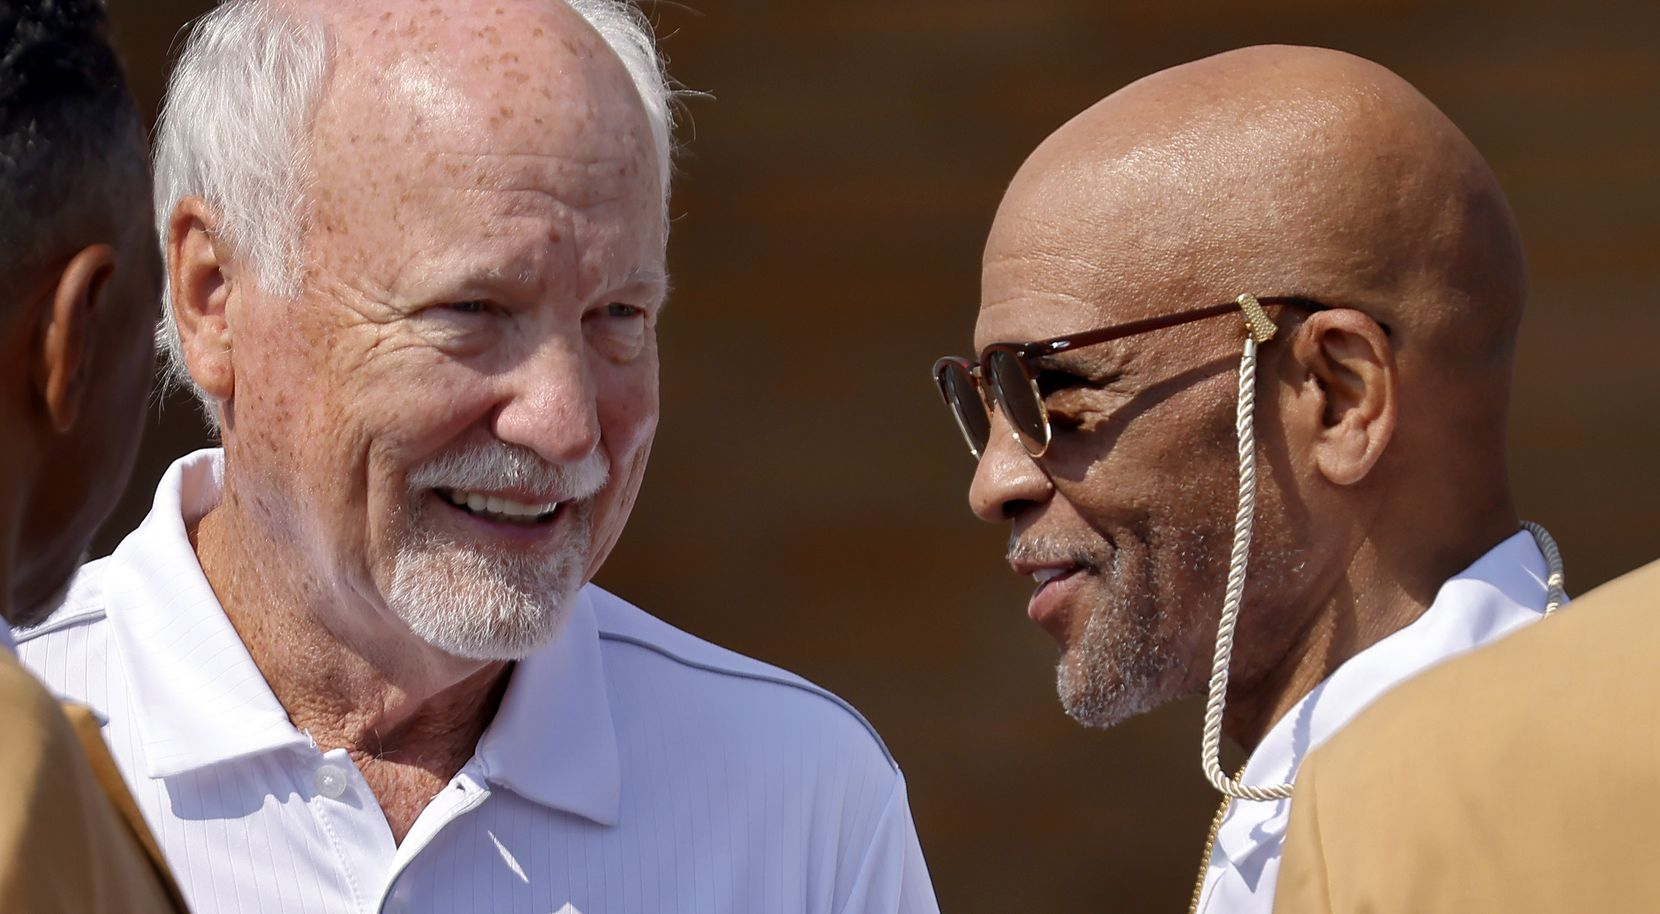 Dallas Cowboys Pro Football Hall of Fame inductees Cliff Harris (left) and Drew Pearson (right) visit before the Gold Jacket group photo outside the Hall in Canton, Ohio, Friday, August 6, 2021.